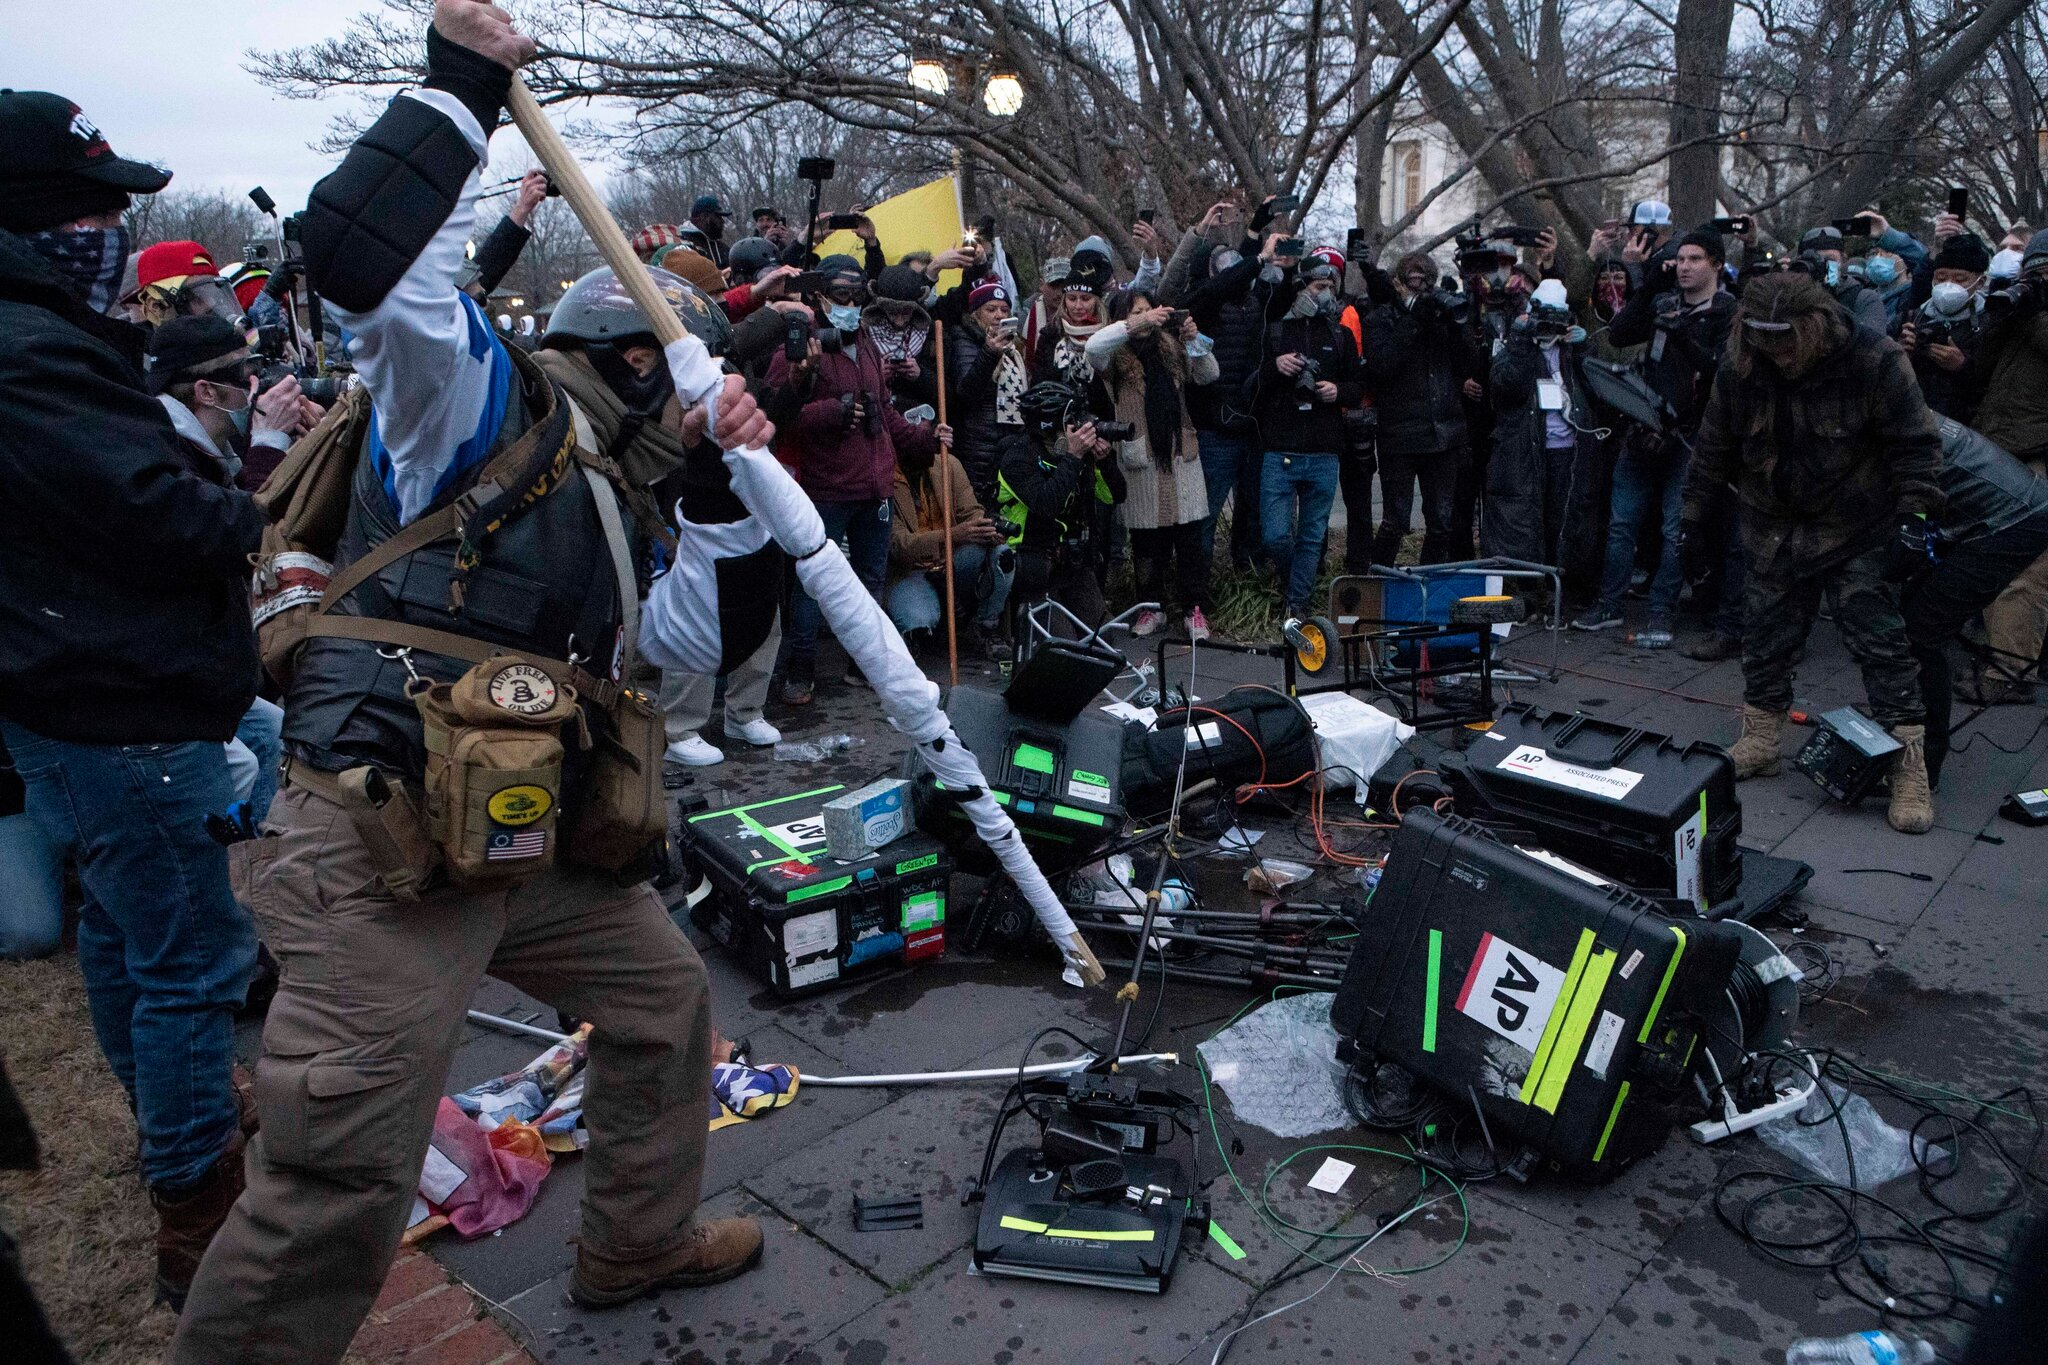 Photo of U.S. Capitol riot. AP photo by Jose Luis Magana